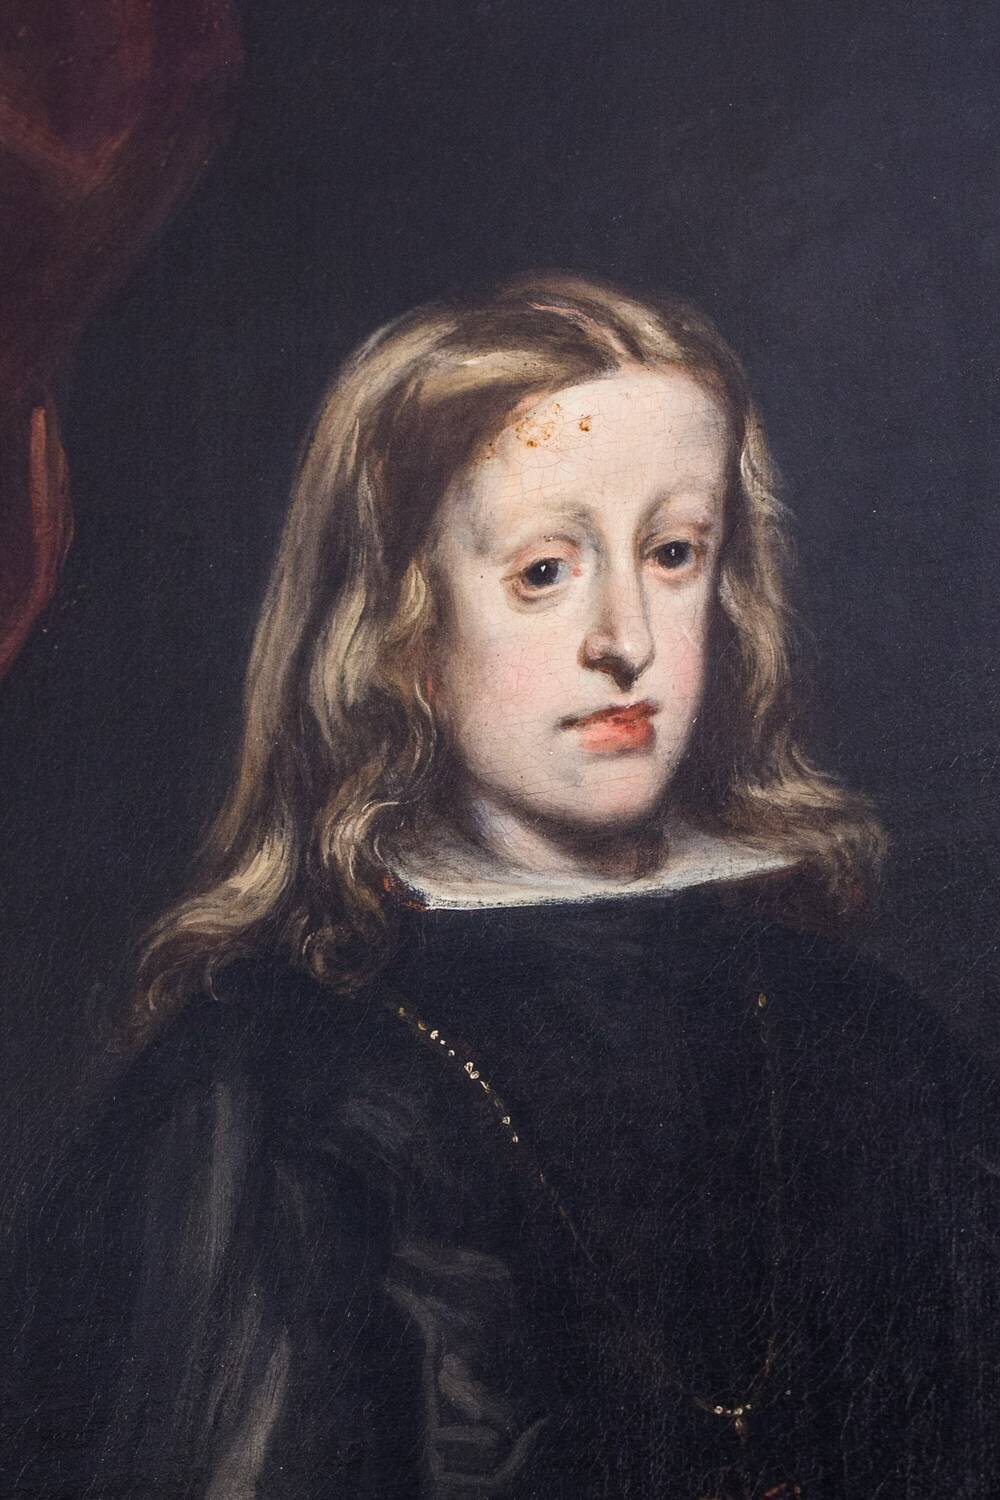 Portrait of a boy with long brown hair. He has an elongated face with a pronounced jaw.